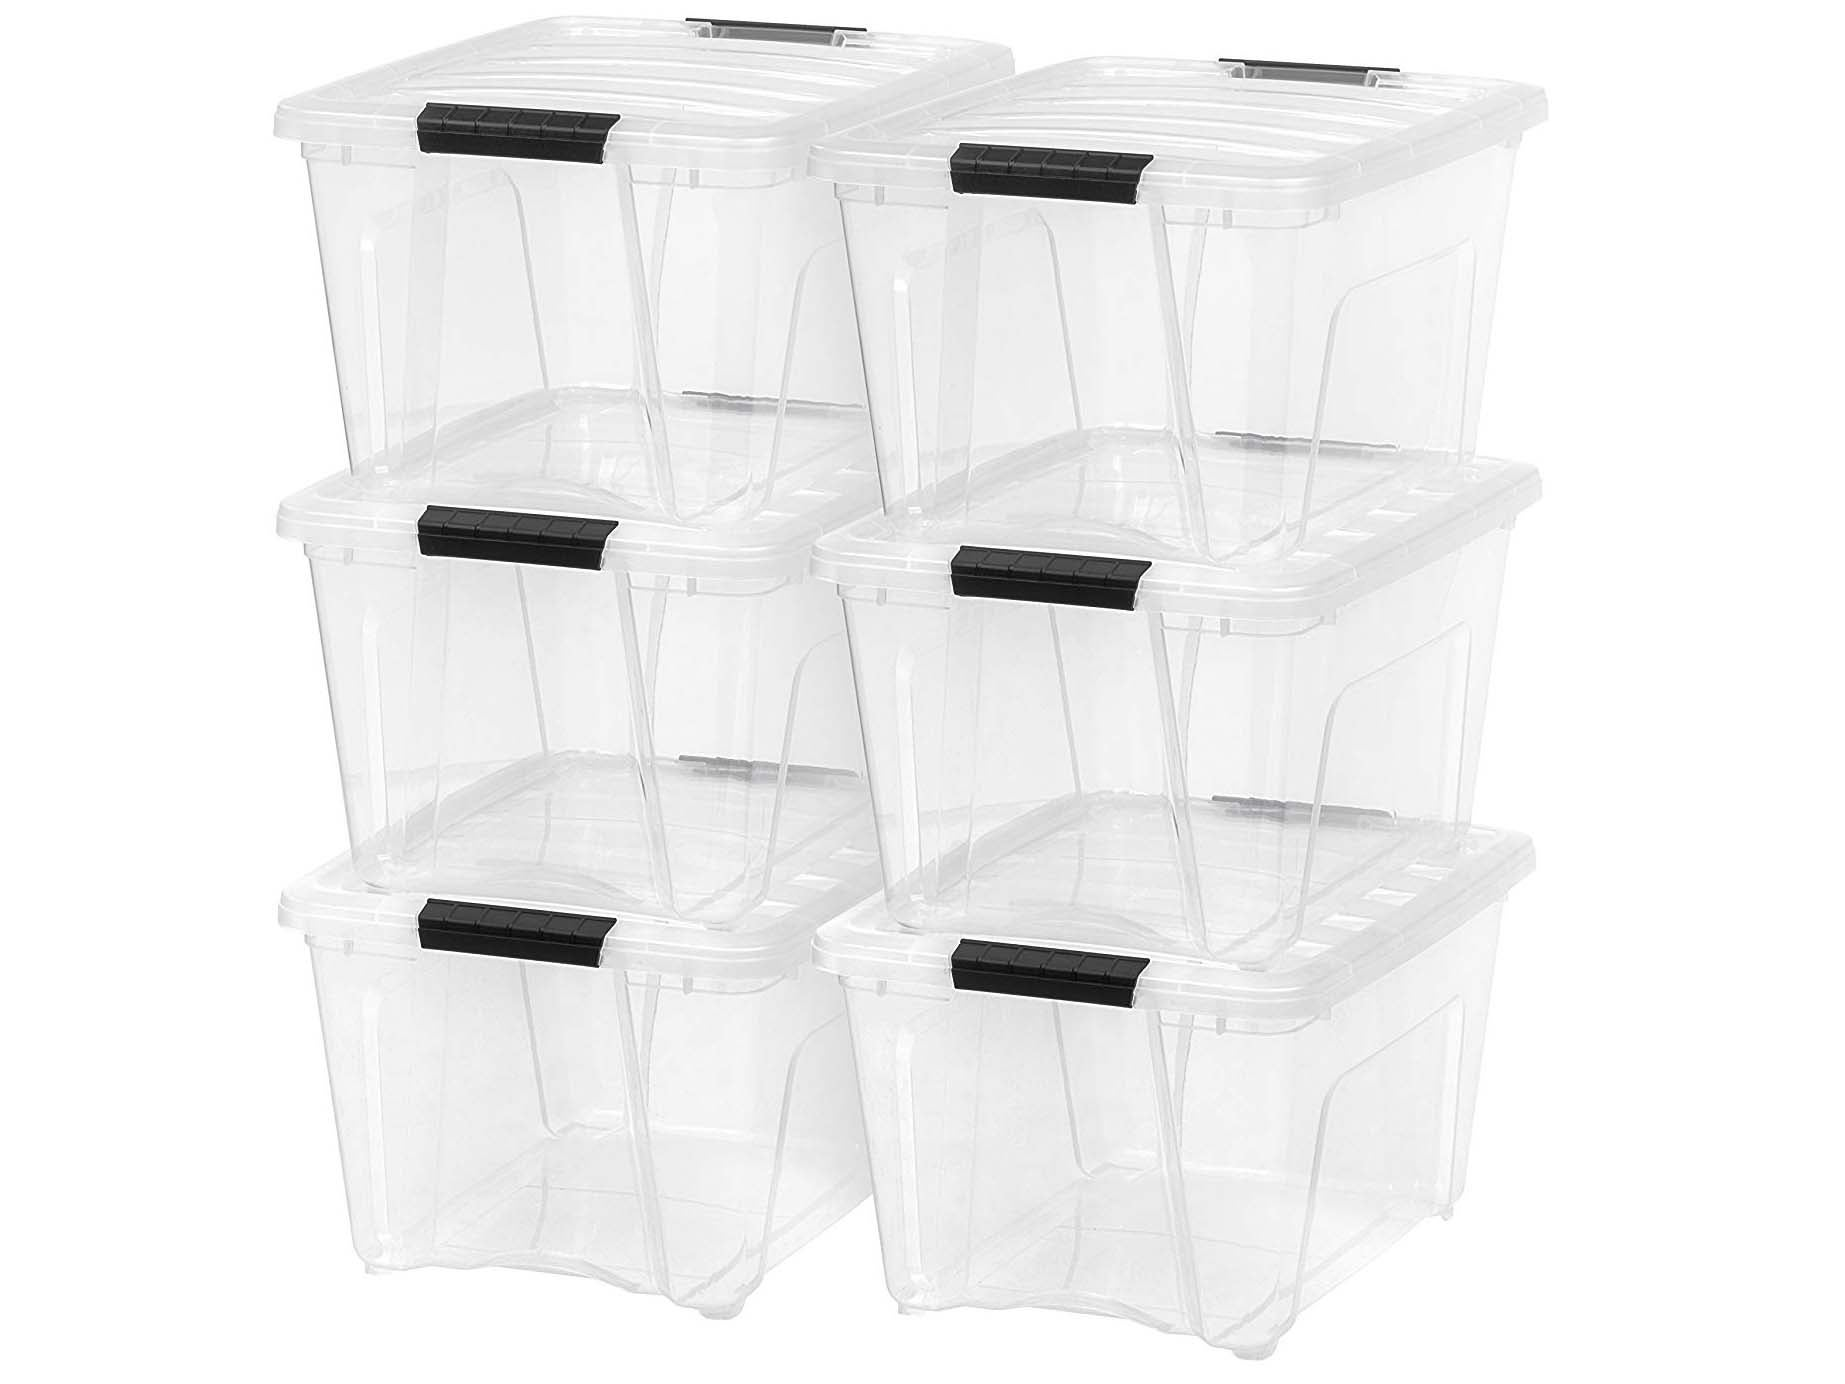 IRIS USA TB-28 32 Quart Stack & Pull Box, Clear, 6 Count